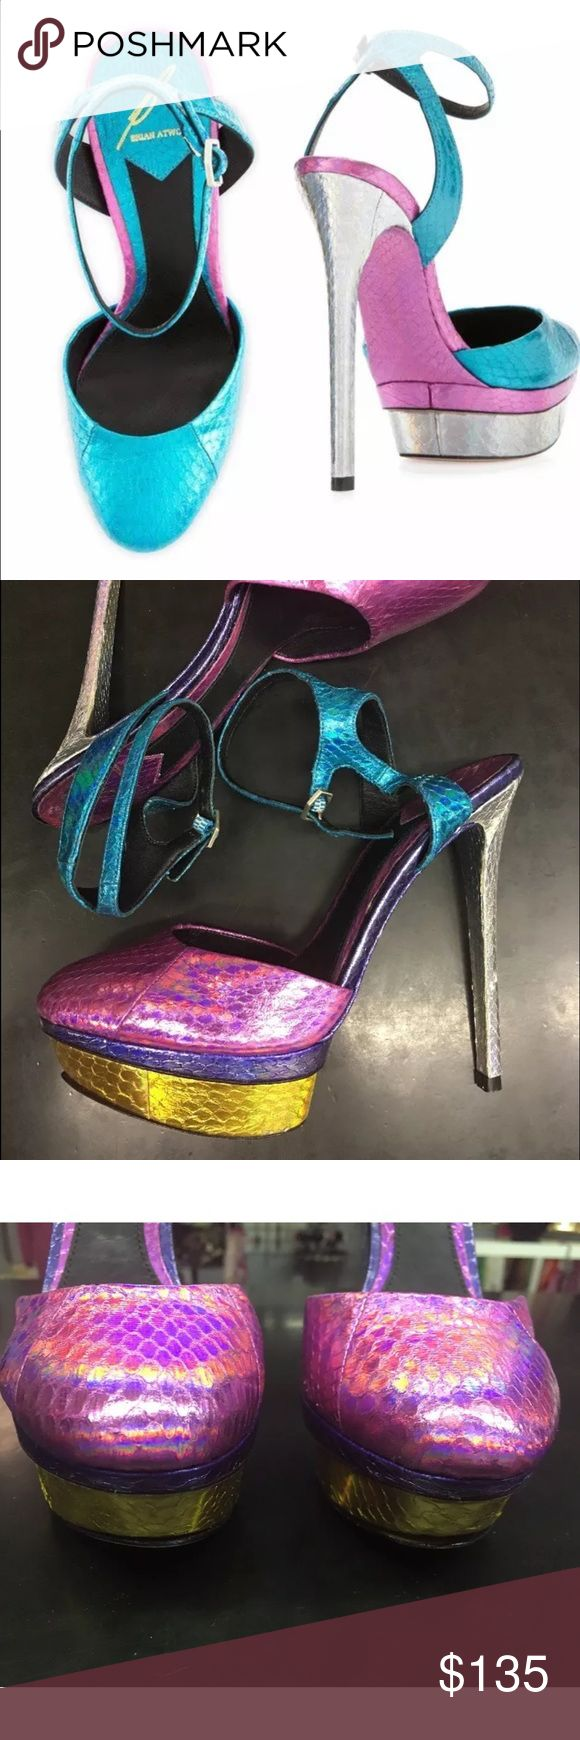 Selling this HOT Brian Atwood HOLOGRAM Fontenay Stiletto!! on Poshmark! My username is: chachagibson. #shopmycloset #poshmark #fashion #shopping #style #forsale #B Brian Atwood #Shoes